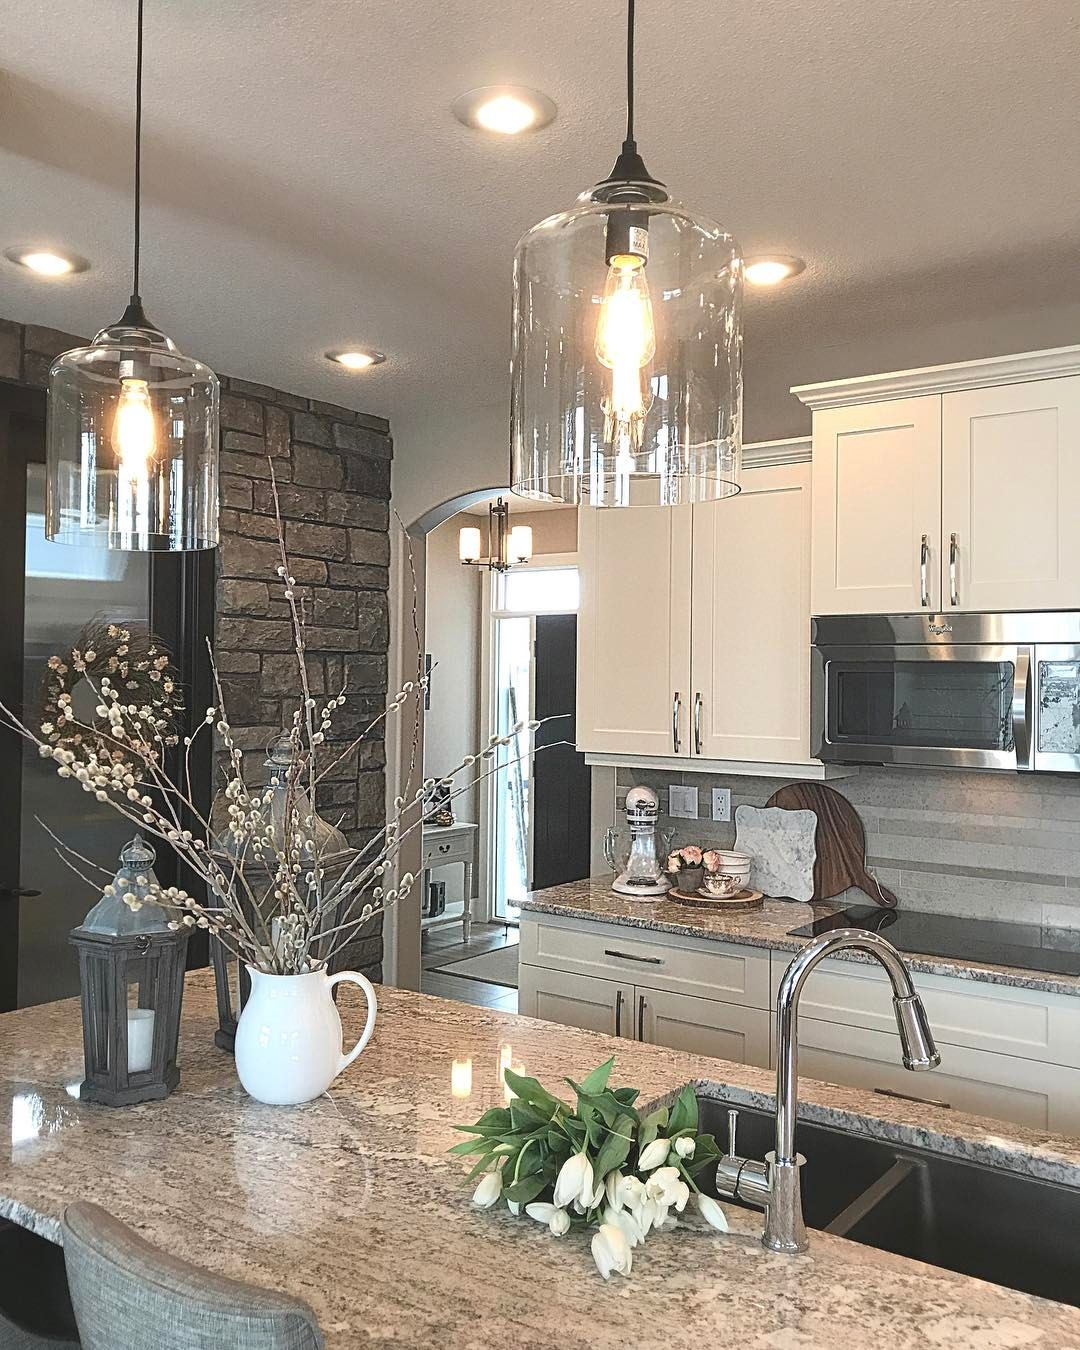 Light Fixtures Kitchen: Pin By Erica Bunker On Decorating My House In 2019